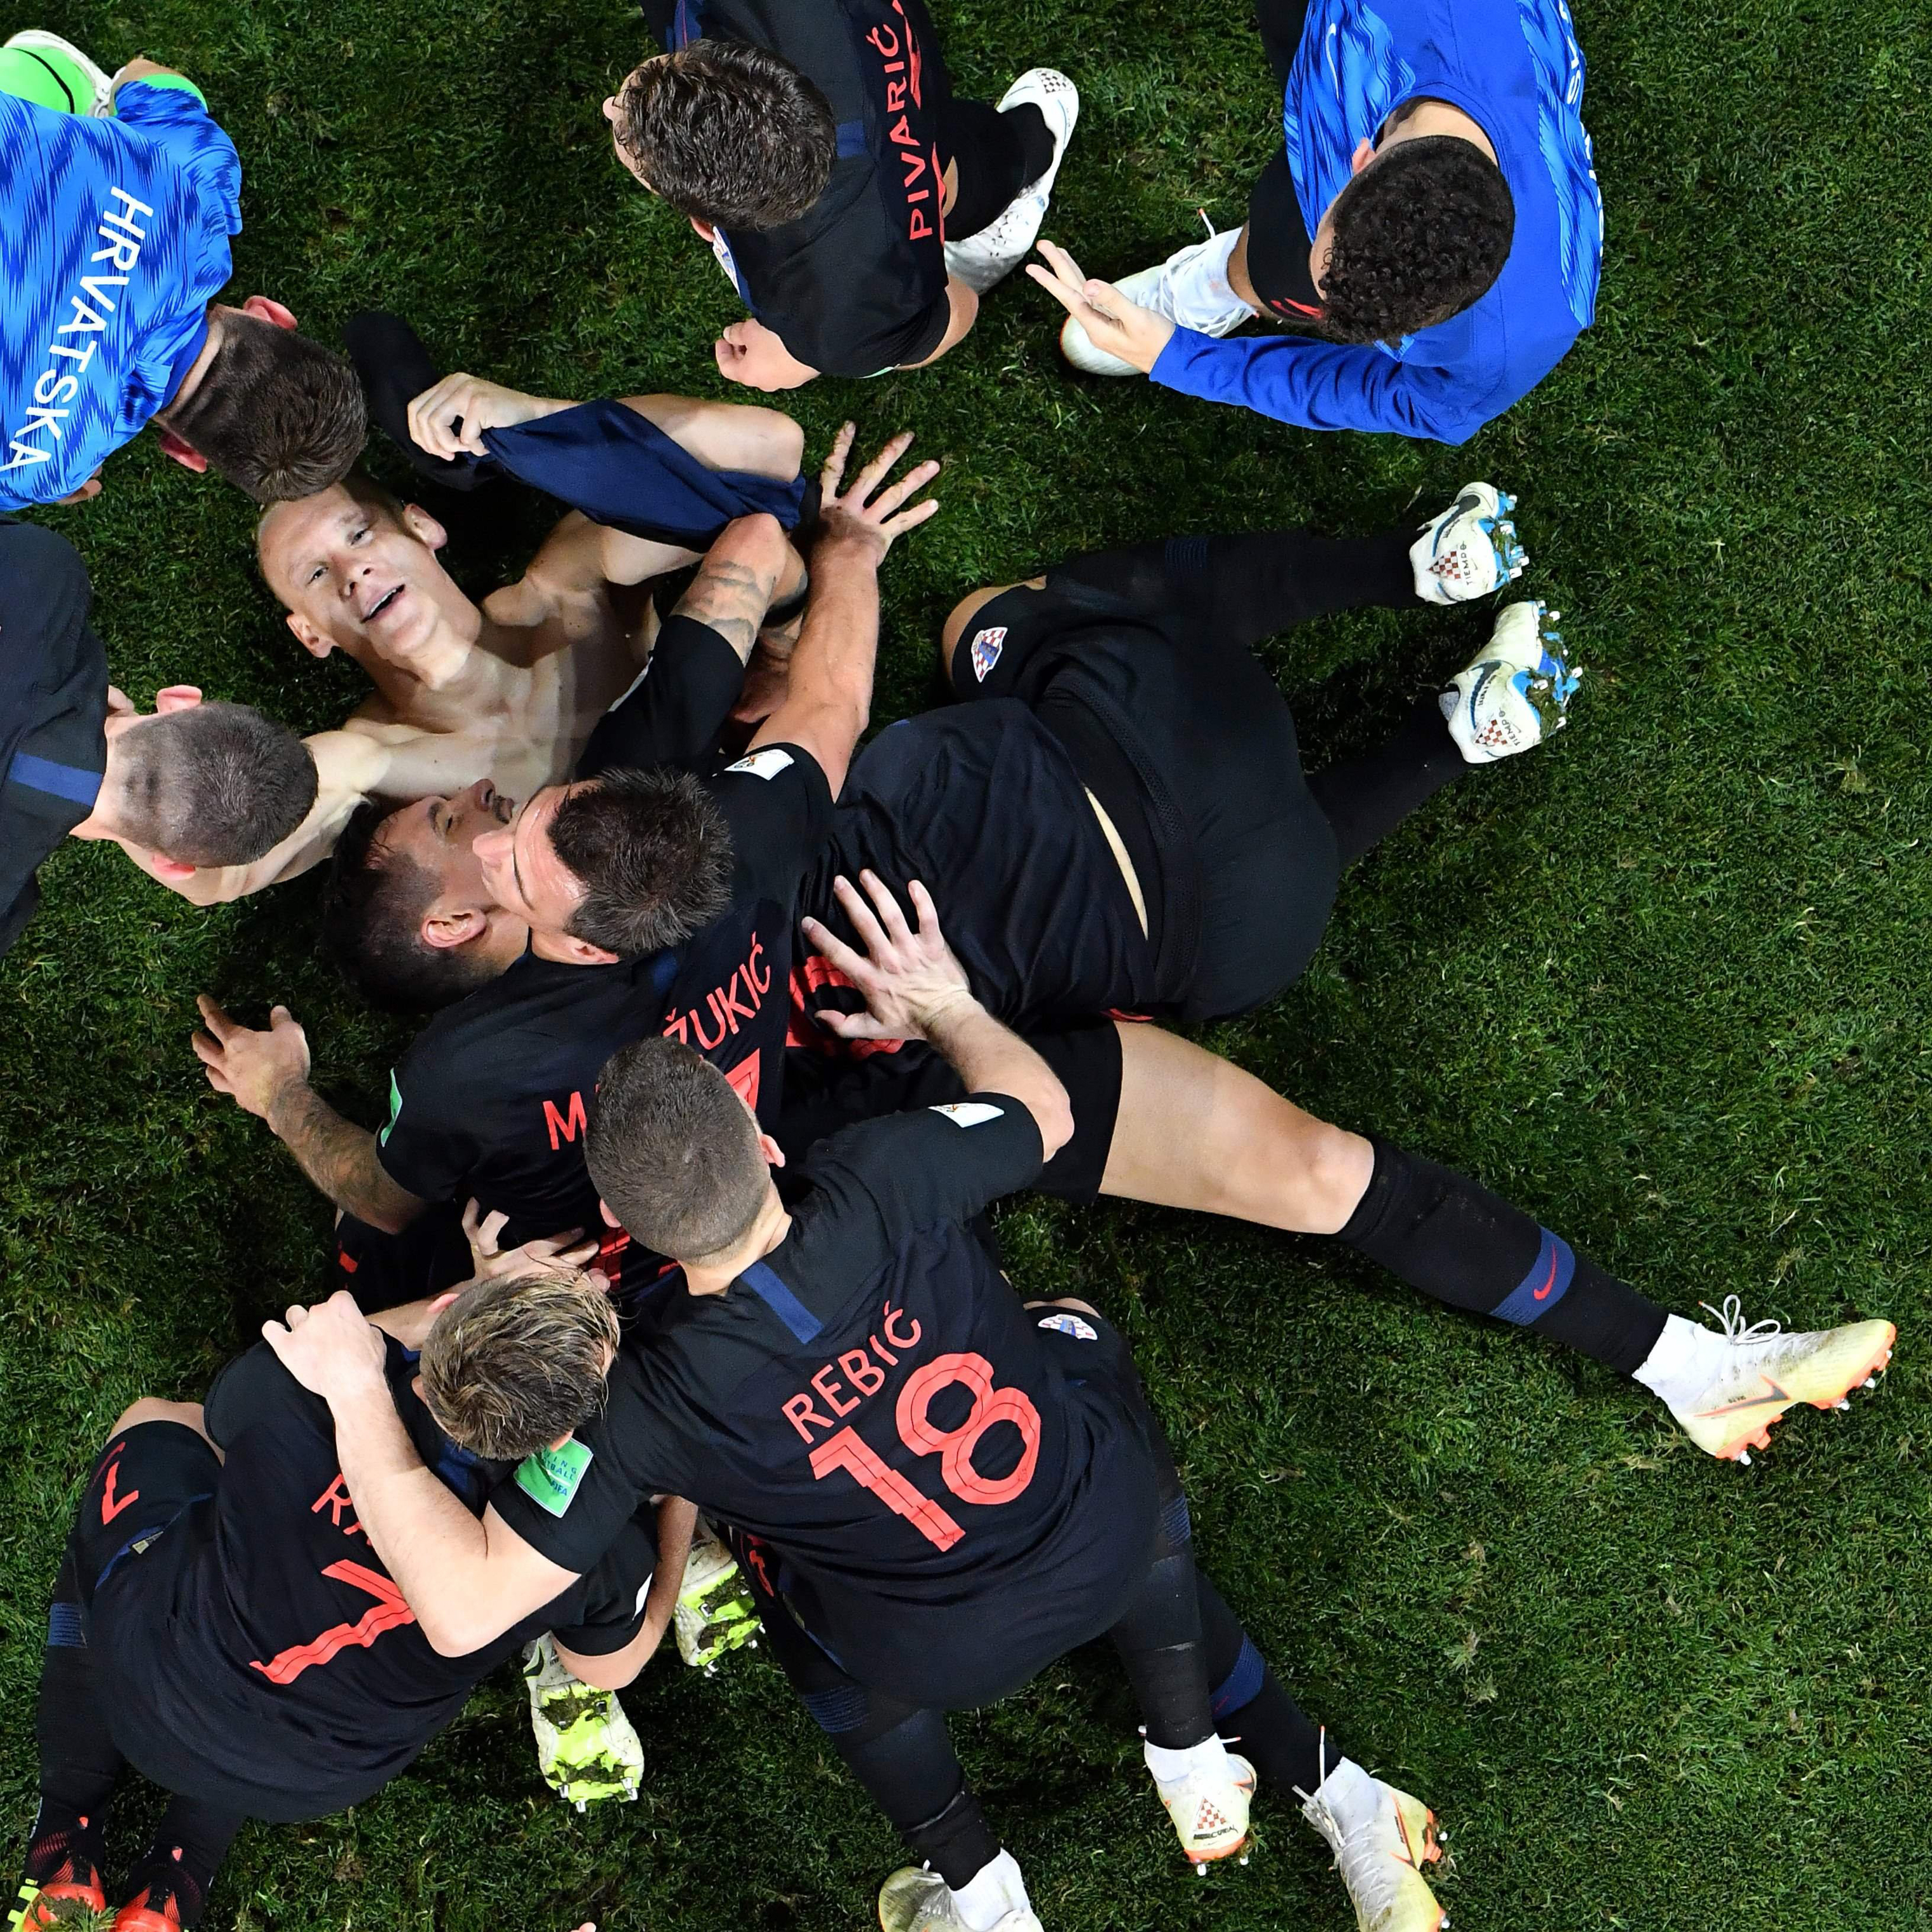 Croatia's defender Domagoj Vida (down) is congratulated by teammates after scoring a goal during the quarter final game between Russia and Croatia on July 7, 2018.